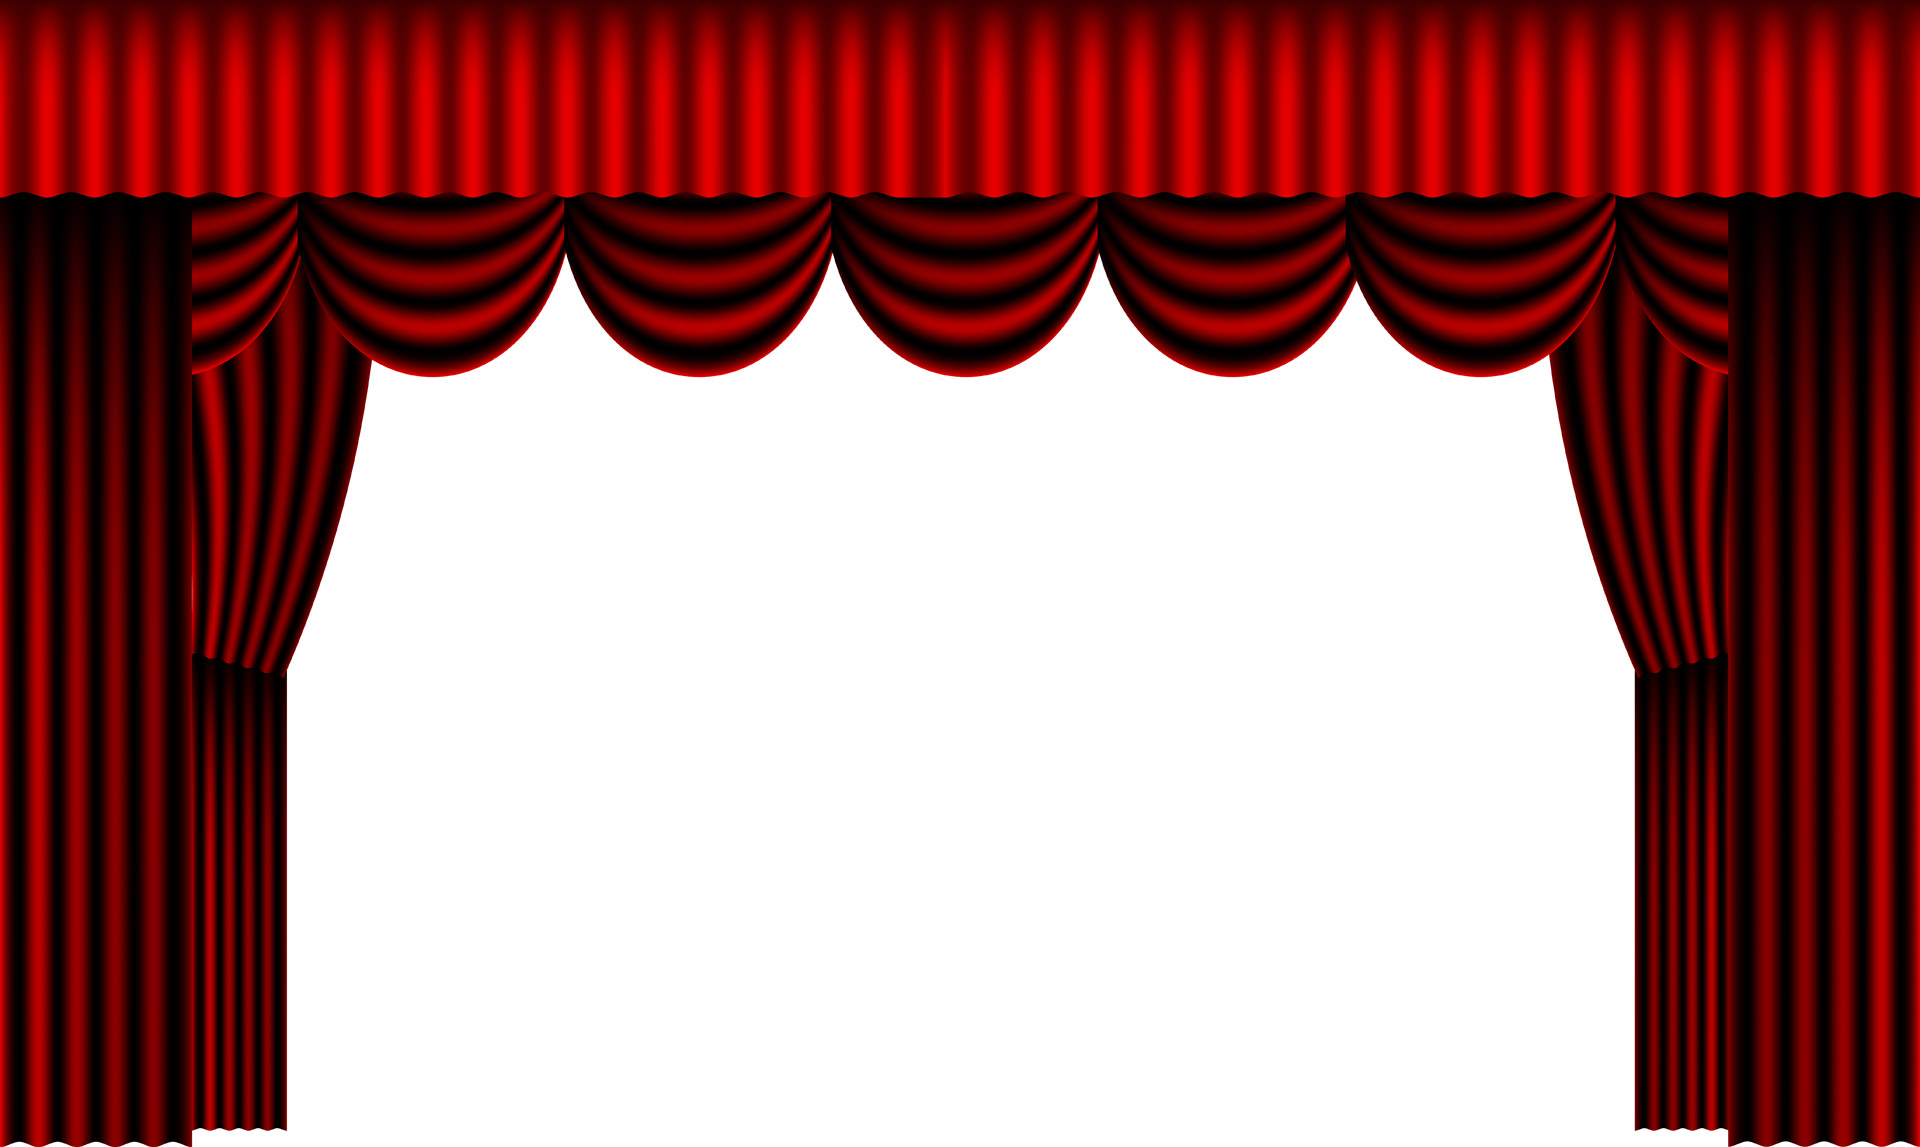 Curtain Raiser Clipart.